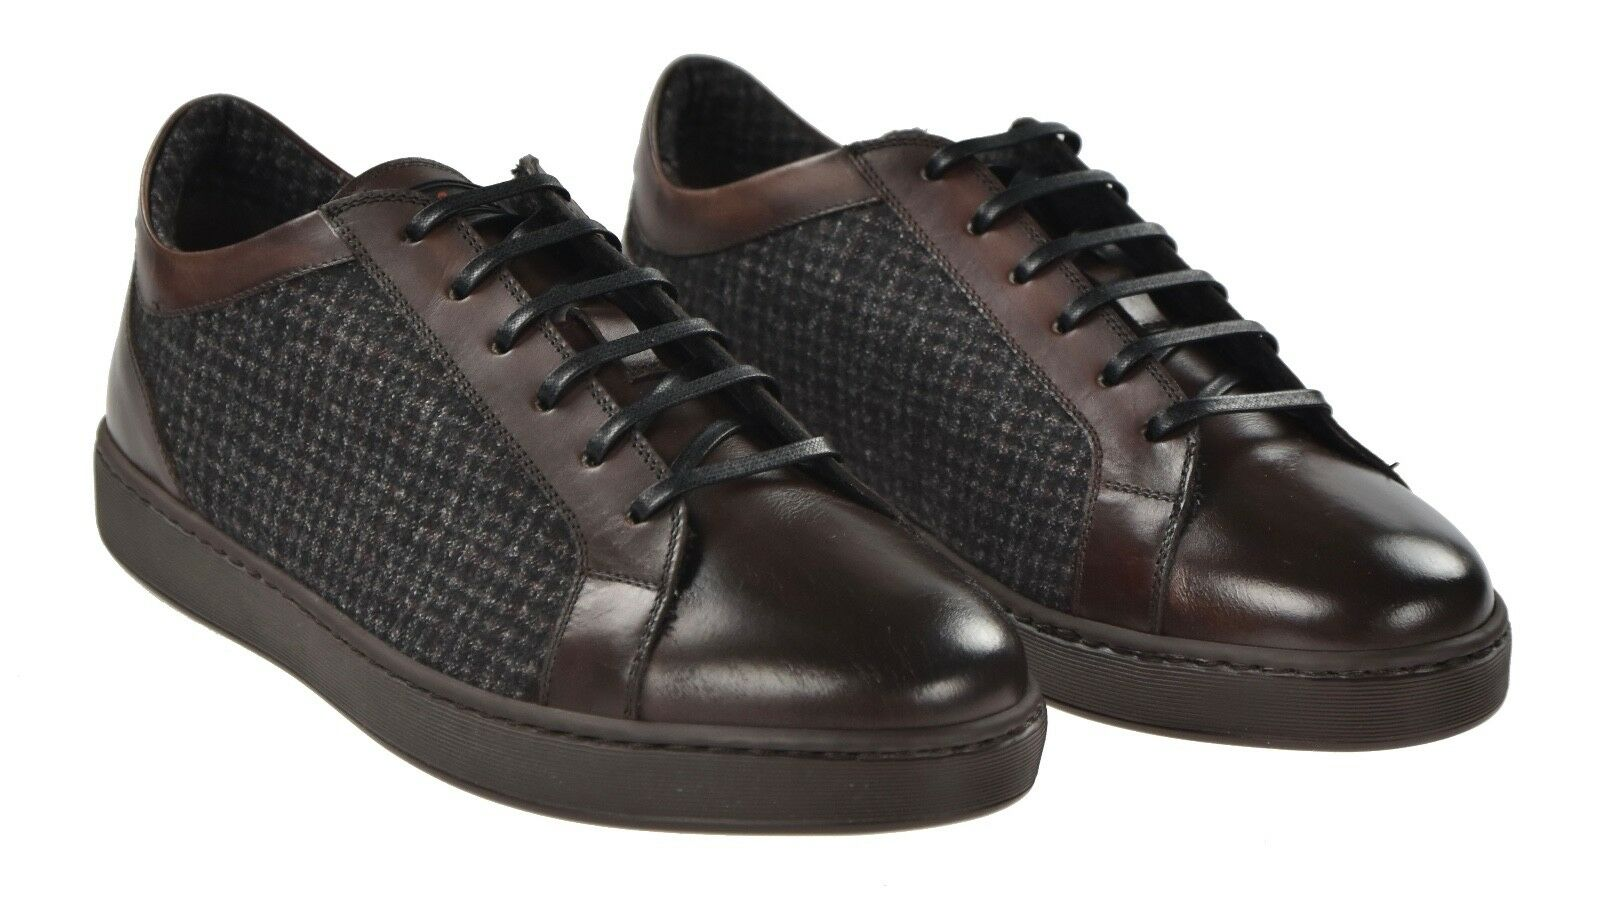 NEW KITON SHOES SNEAKERS LEATHER AND CASHMERE SIZE 9.5 US 42.5 KSC50